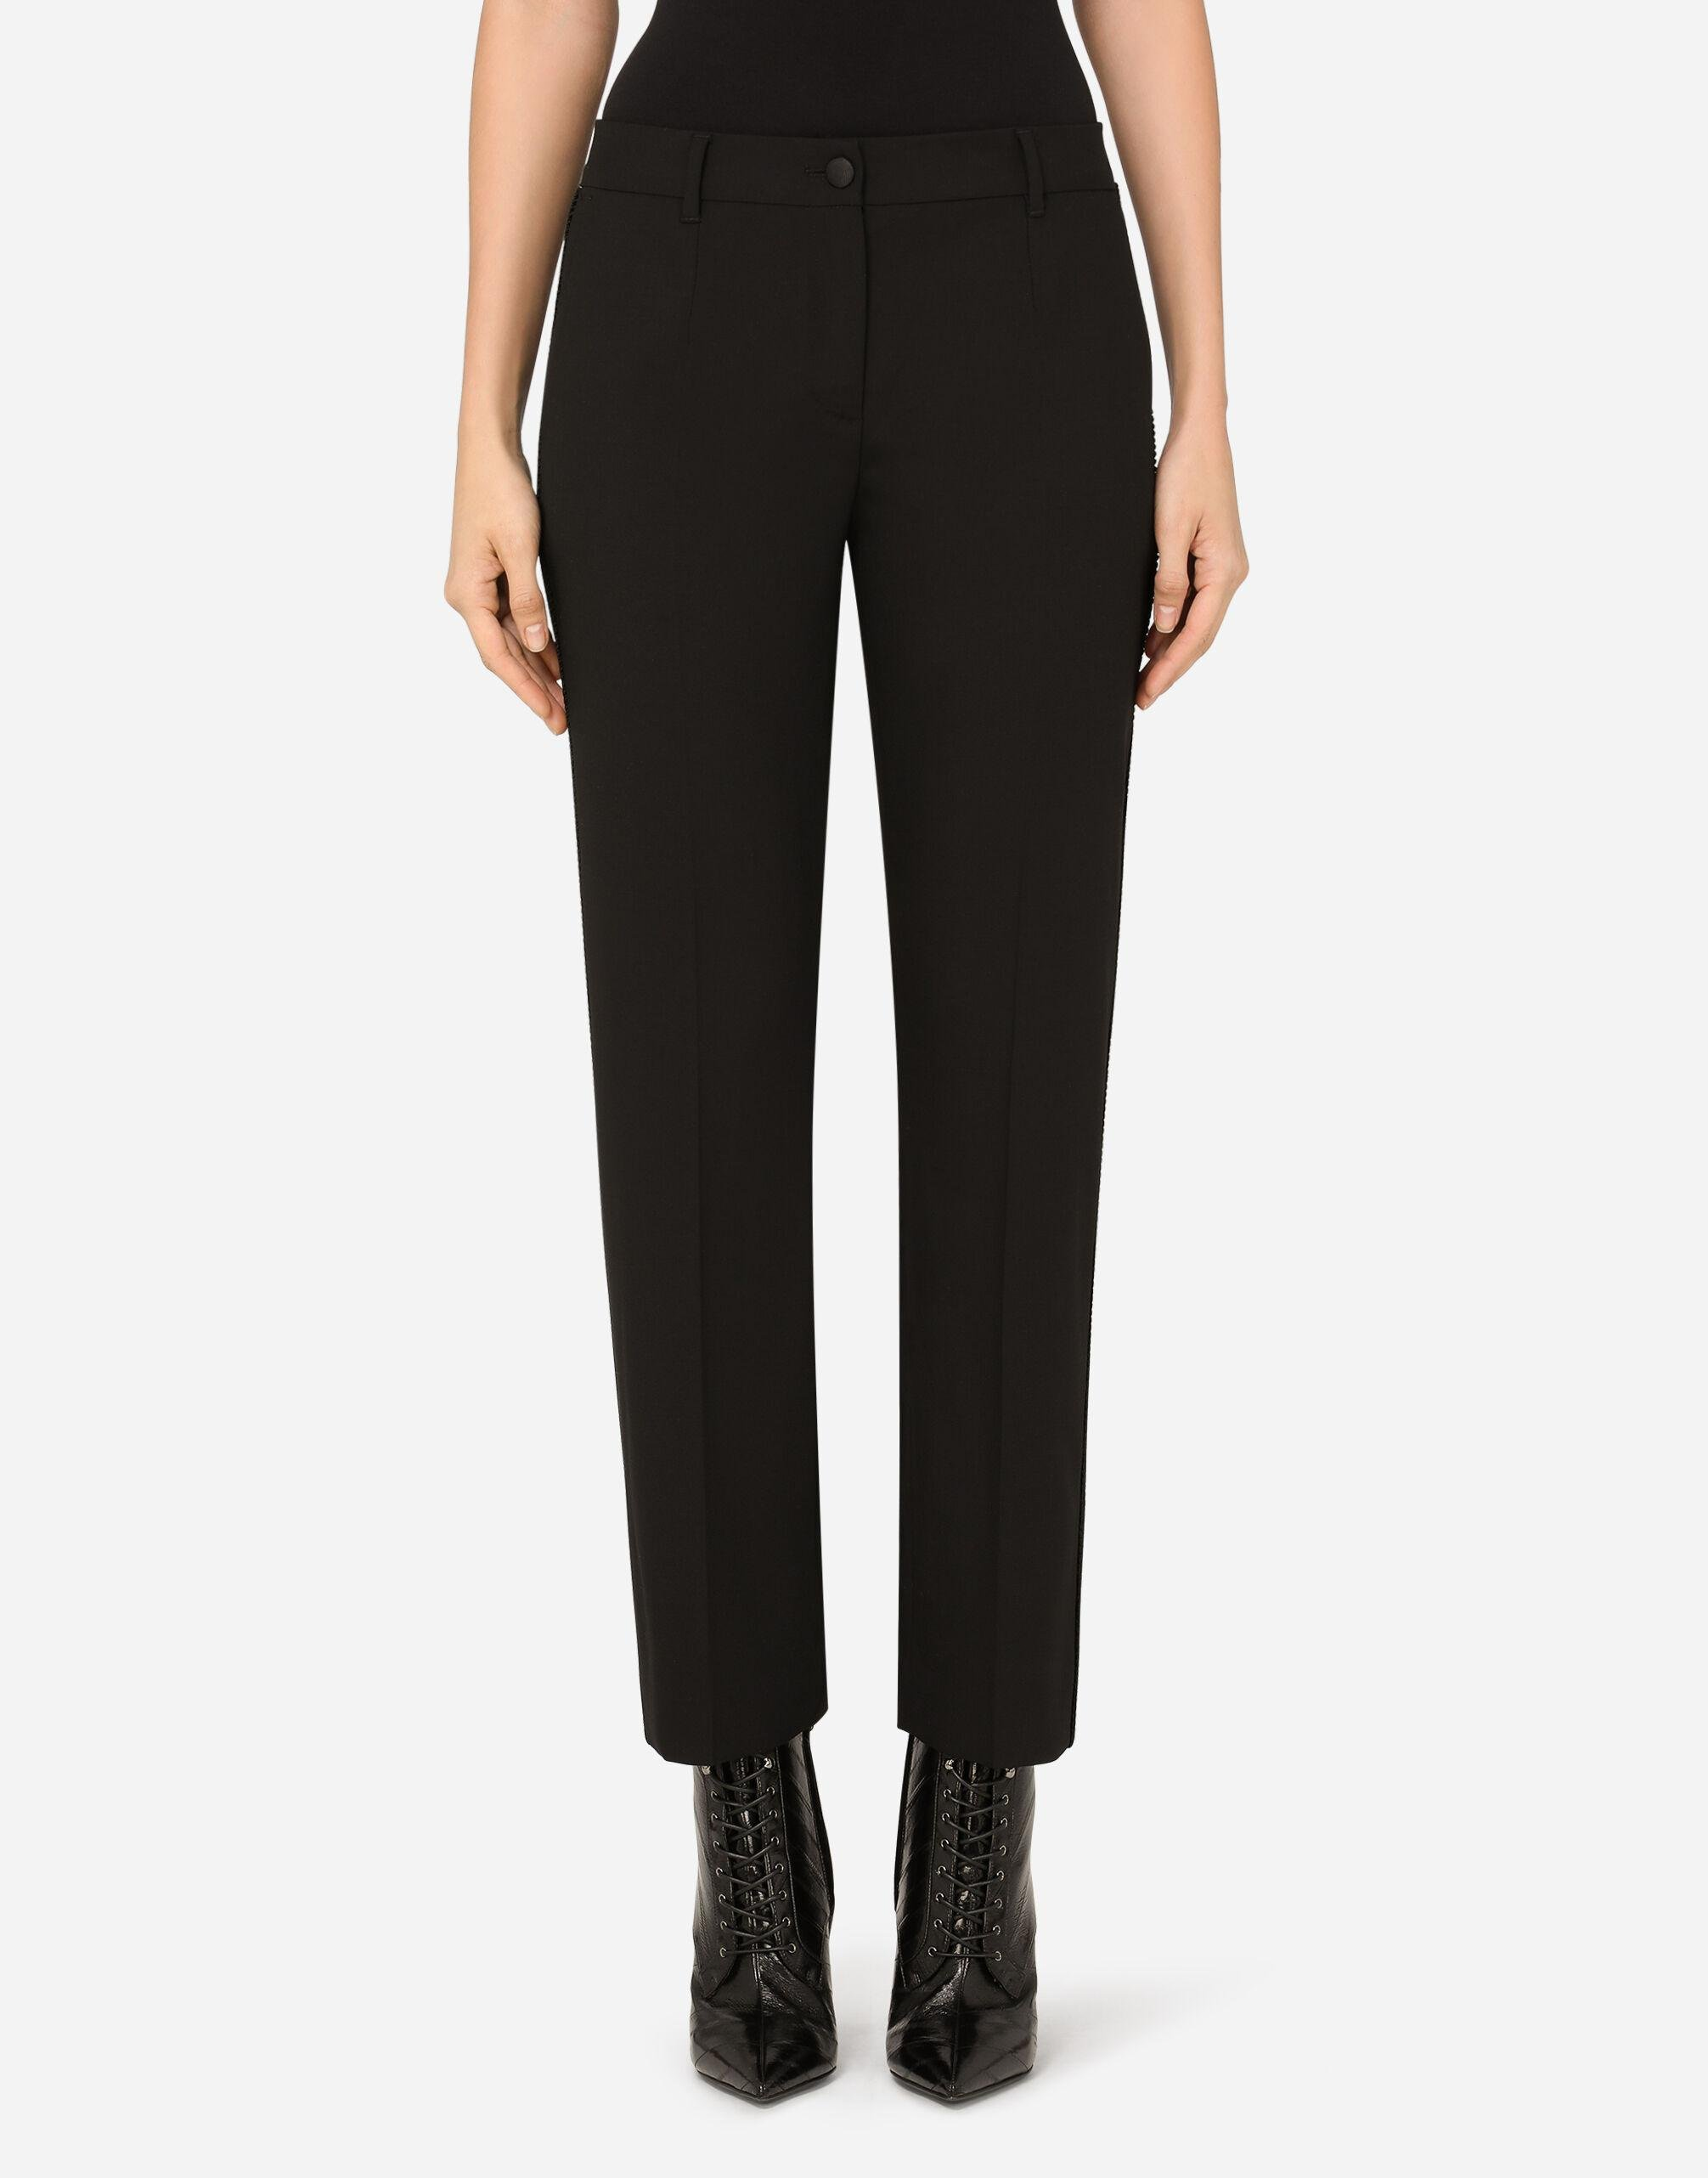 Stretch wool pants with satin bands